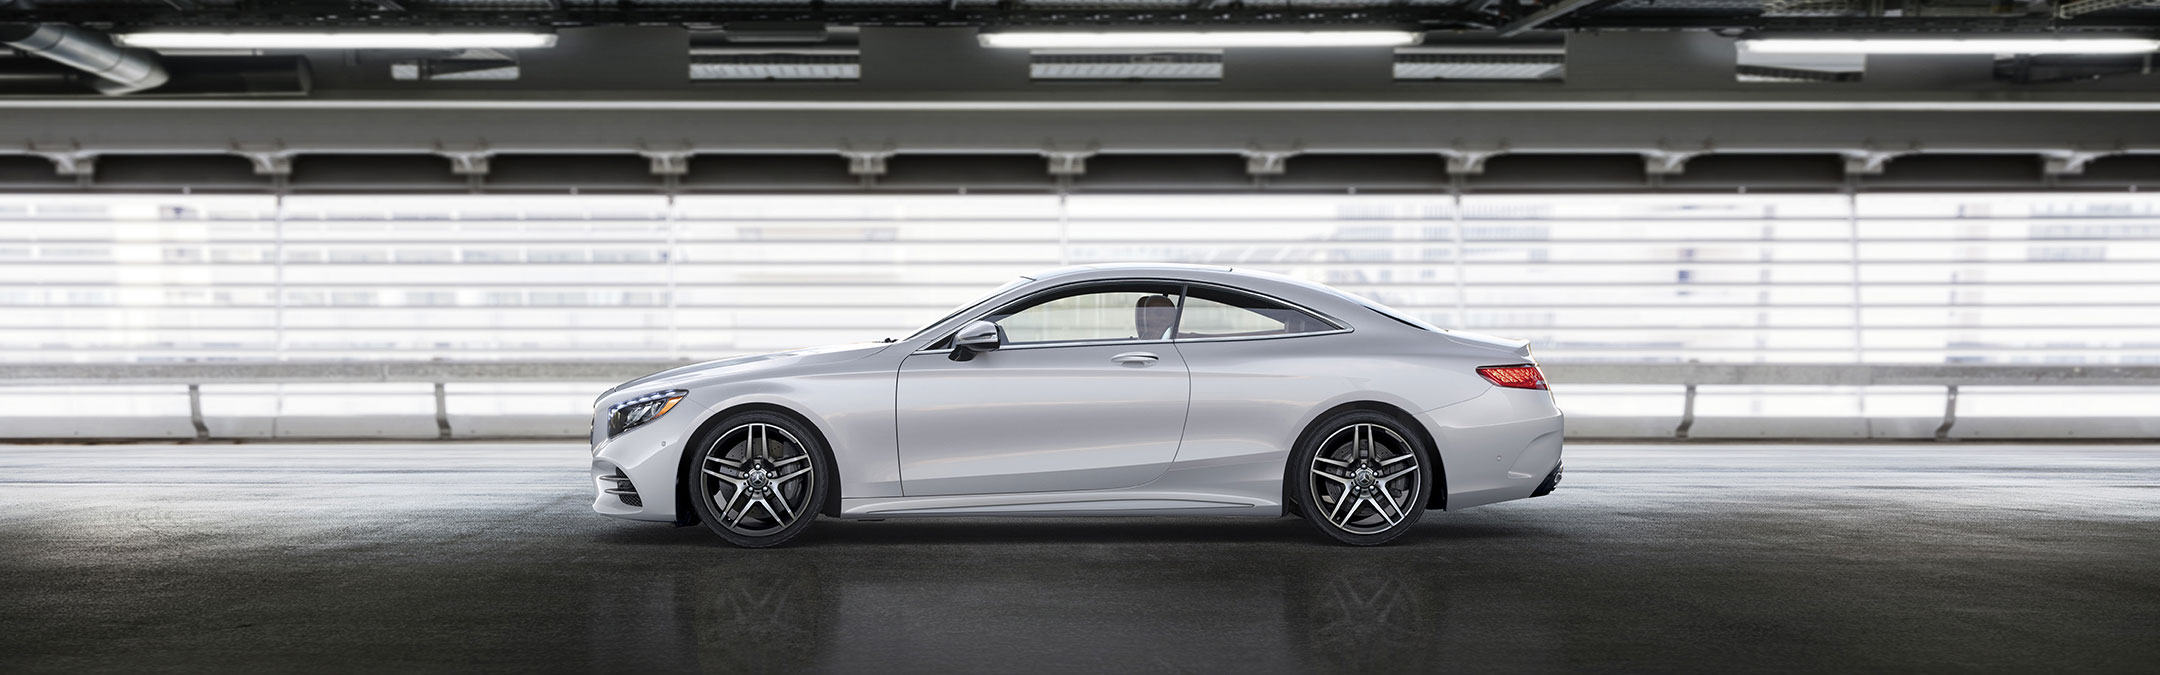 2019 S Class Coupe Mercedes Benz